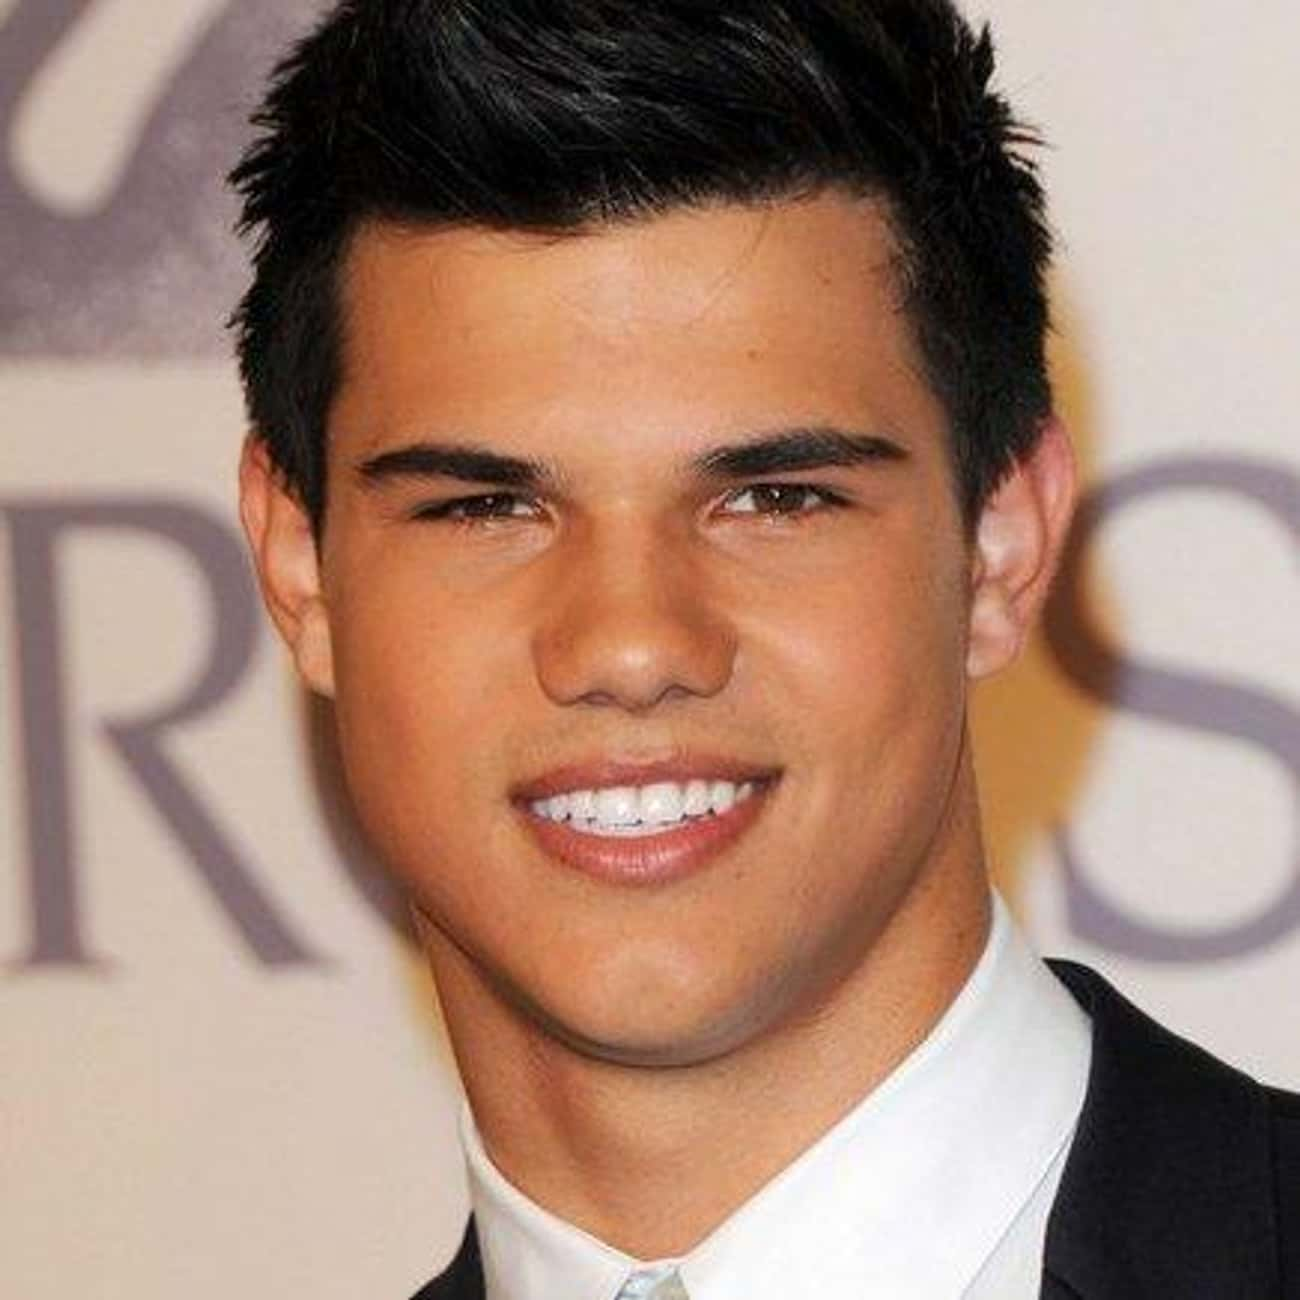 Taylor Lautner is listed (or ranked) 3 on the list Hollywood's 10 Best Smiles